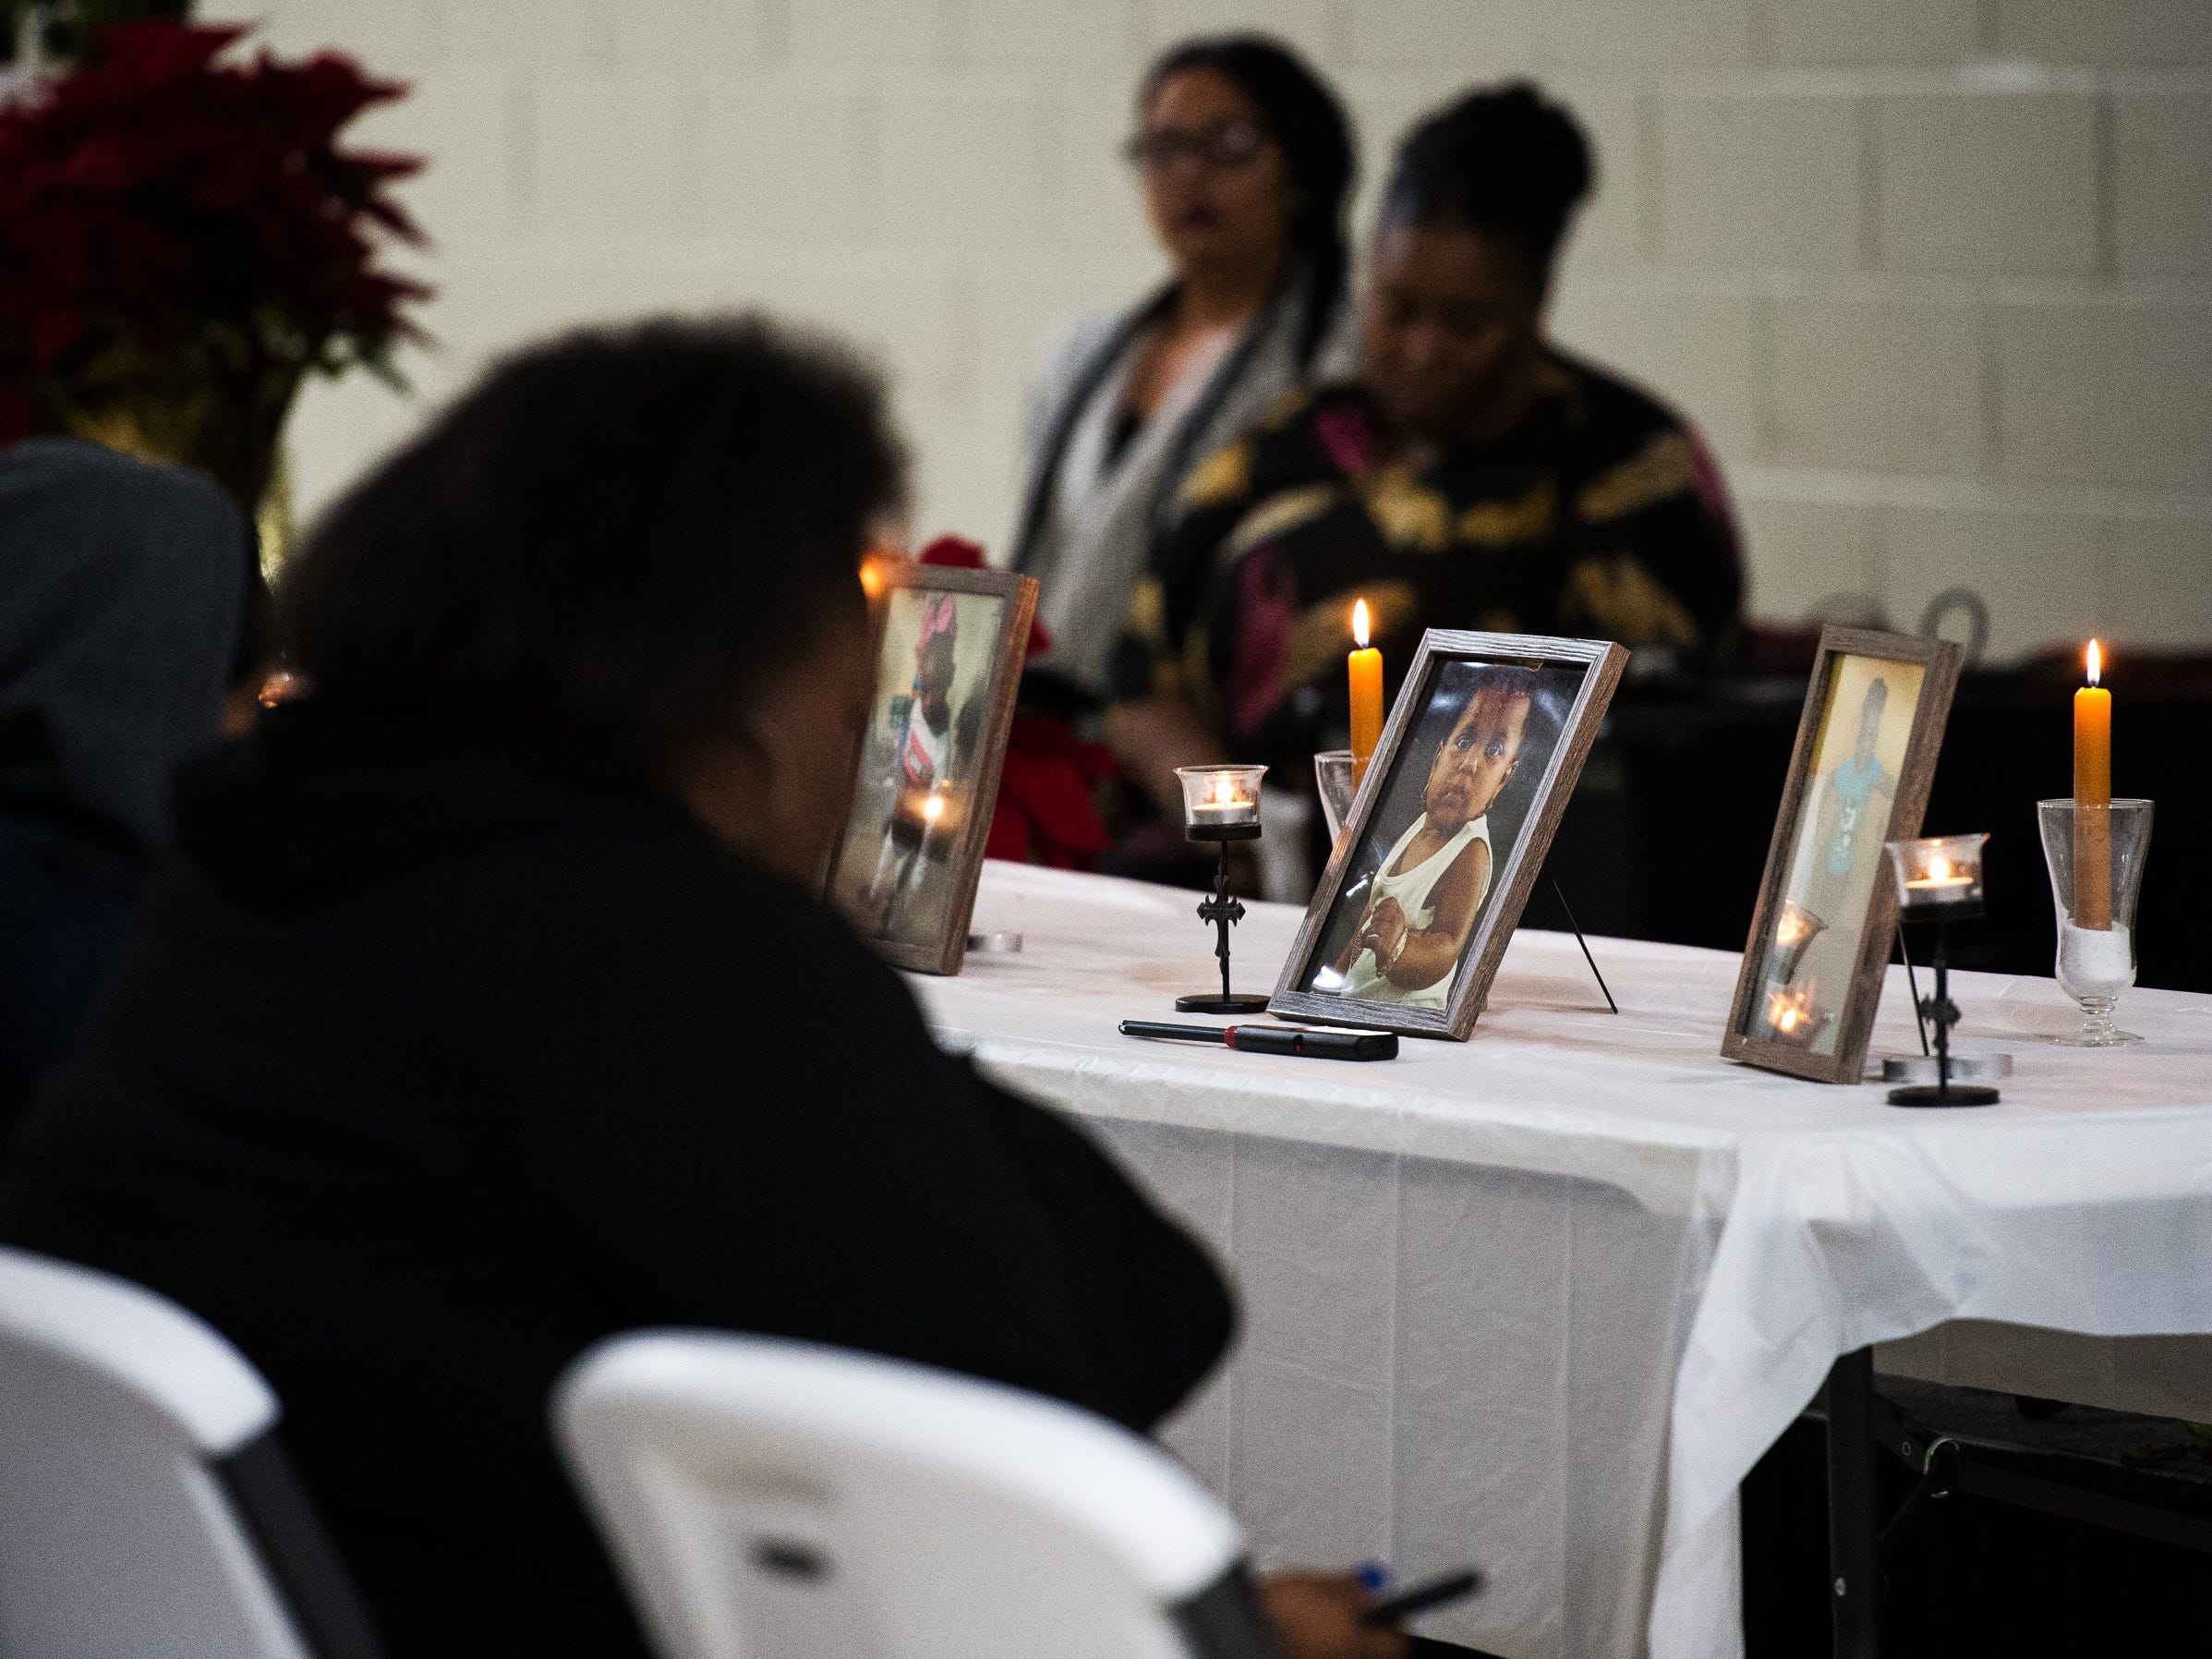 A vigil is held for siblings Arnez Yaron Jamison, Jr., 4, Robbiana Evans, 6, Jamire Halley, 8, and Ar'mani Jamison, 2, at Clearview Baptist Church on Friday, Dec. 14, 2018.